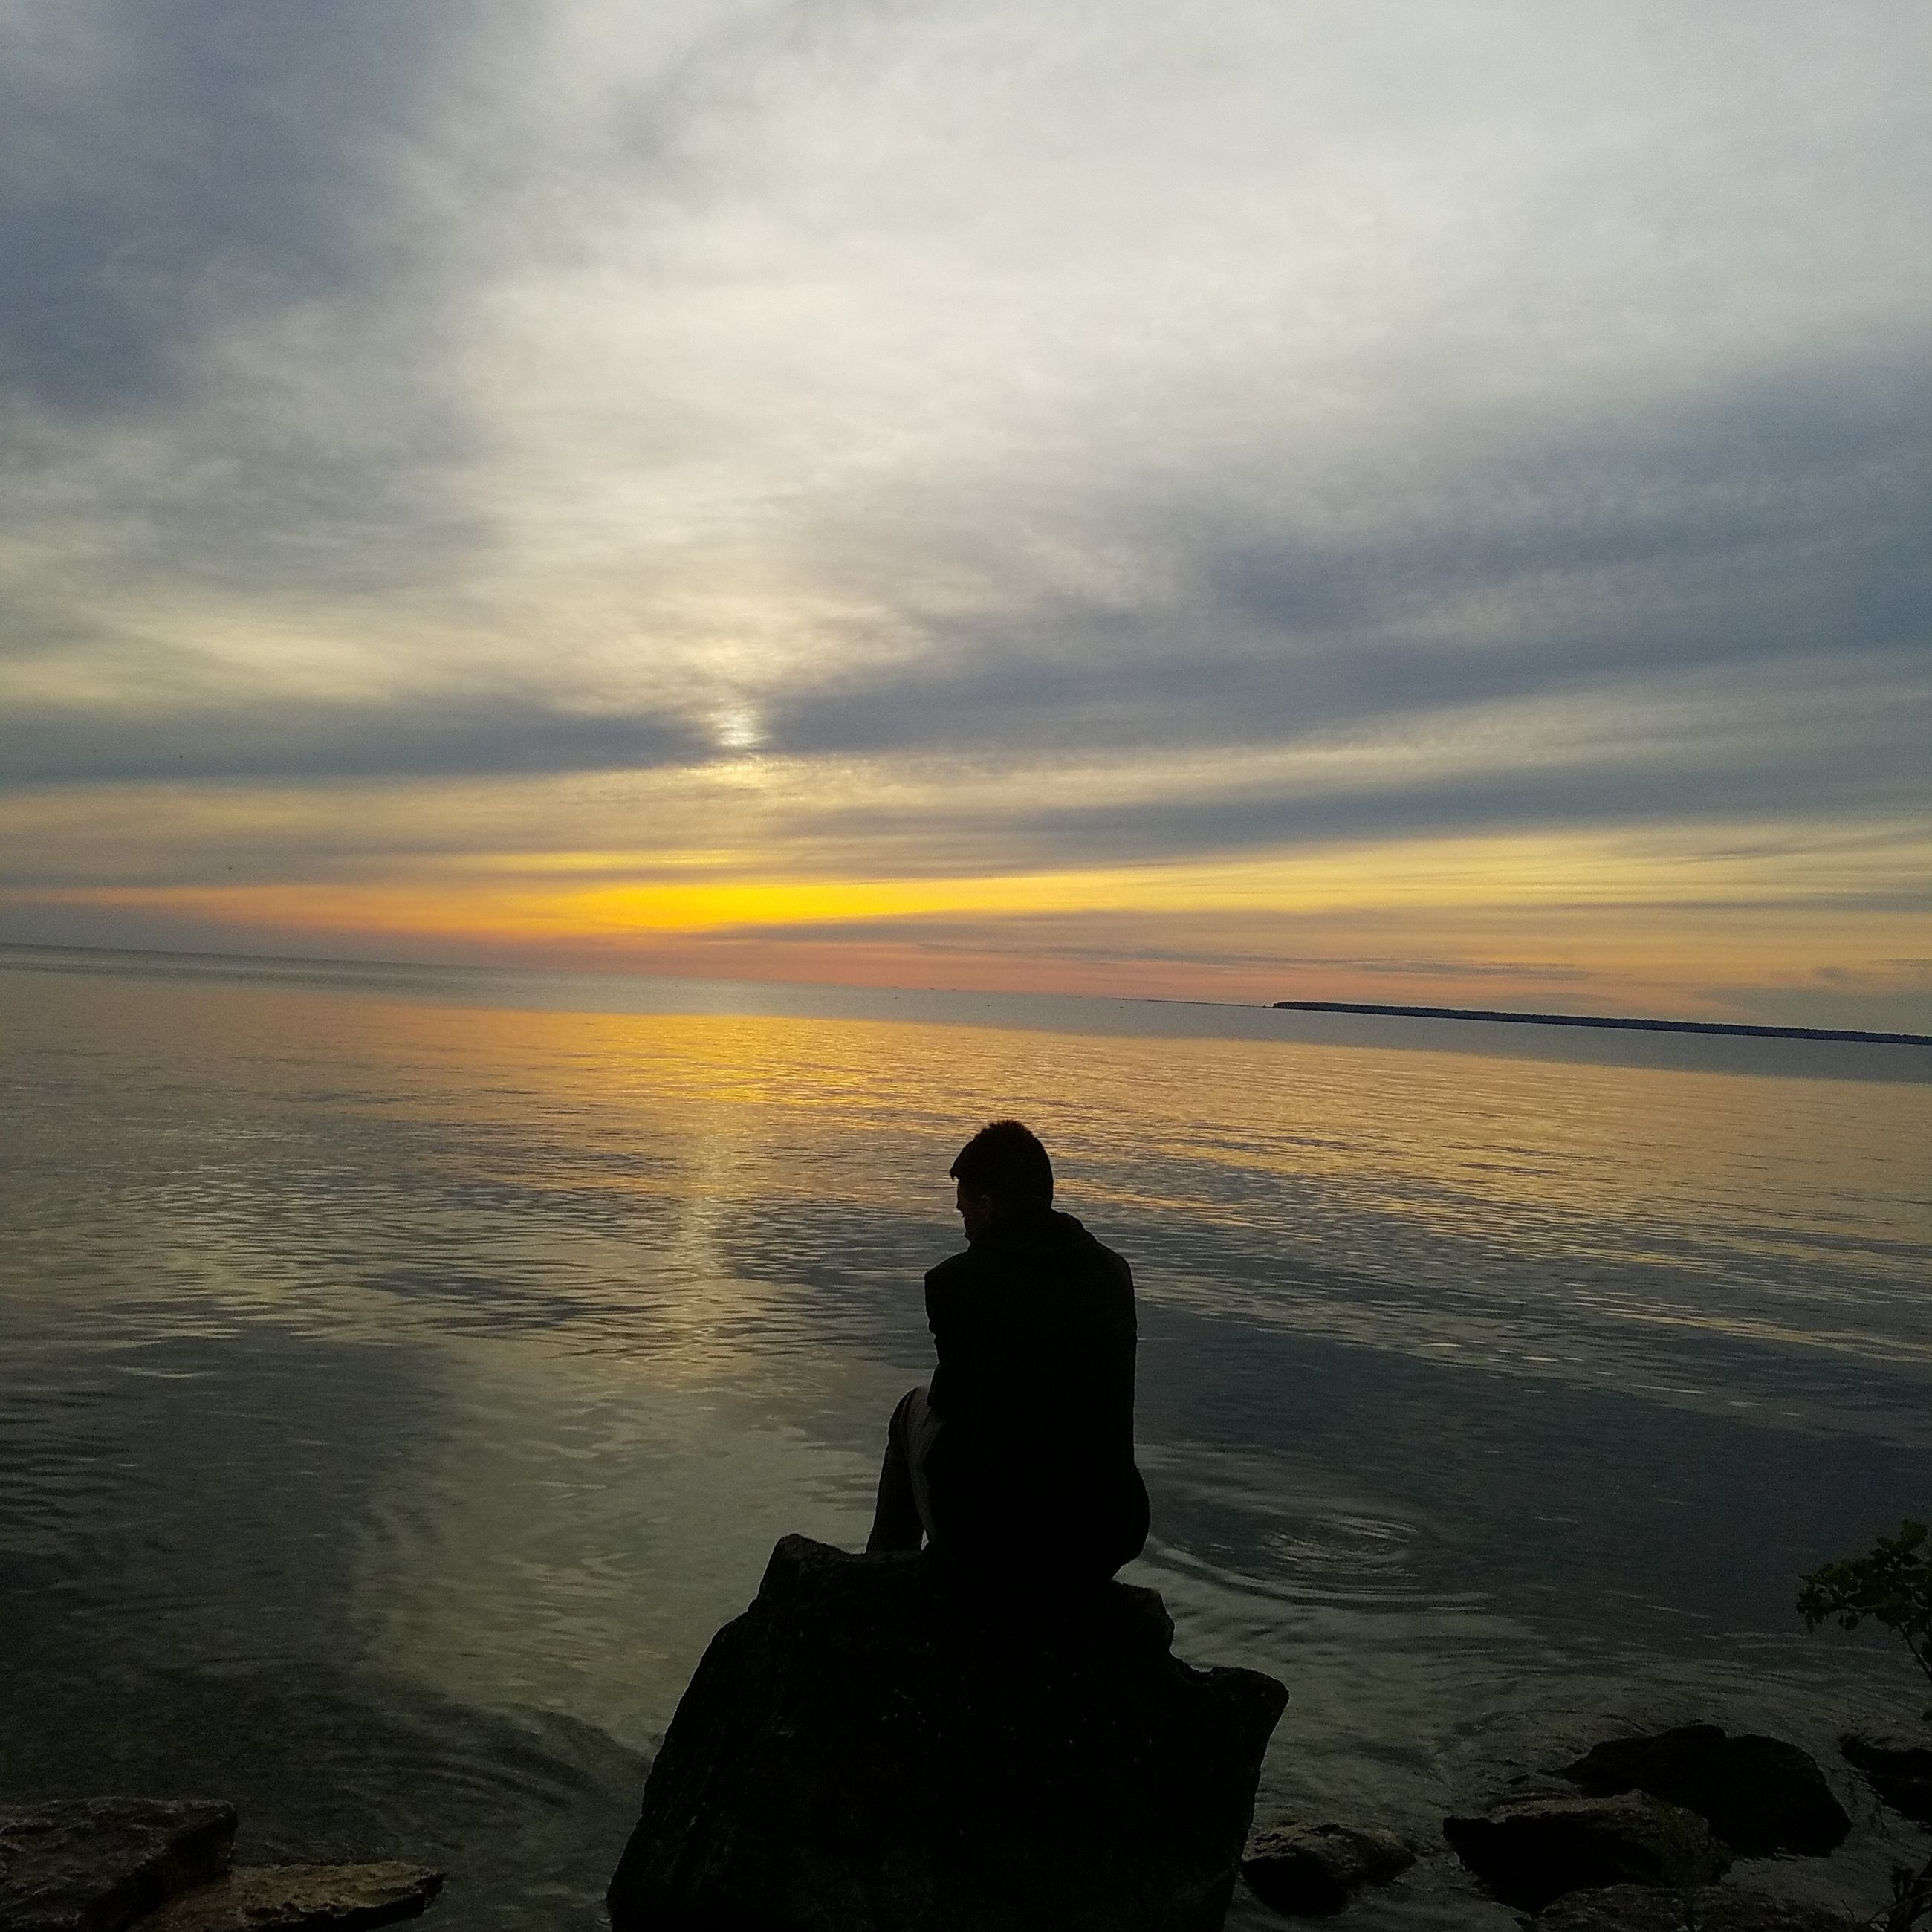 sunset, water, sea, tranquil scene, scenics, silhouette, beach, vacations, men, tourism, leisure activity, tranquility, beauty in nature, travel, lifestyles, cloud - sky, tourist, non-urban scene, nature, getting away from it all, atmosphere, travel destinations, rock - object, atmospheric mood, sky, loneliness, shore, idyllic, reflection, carefree, relaxation, dramatic sky, majestic